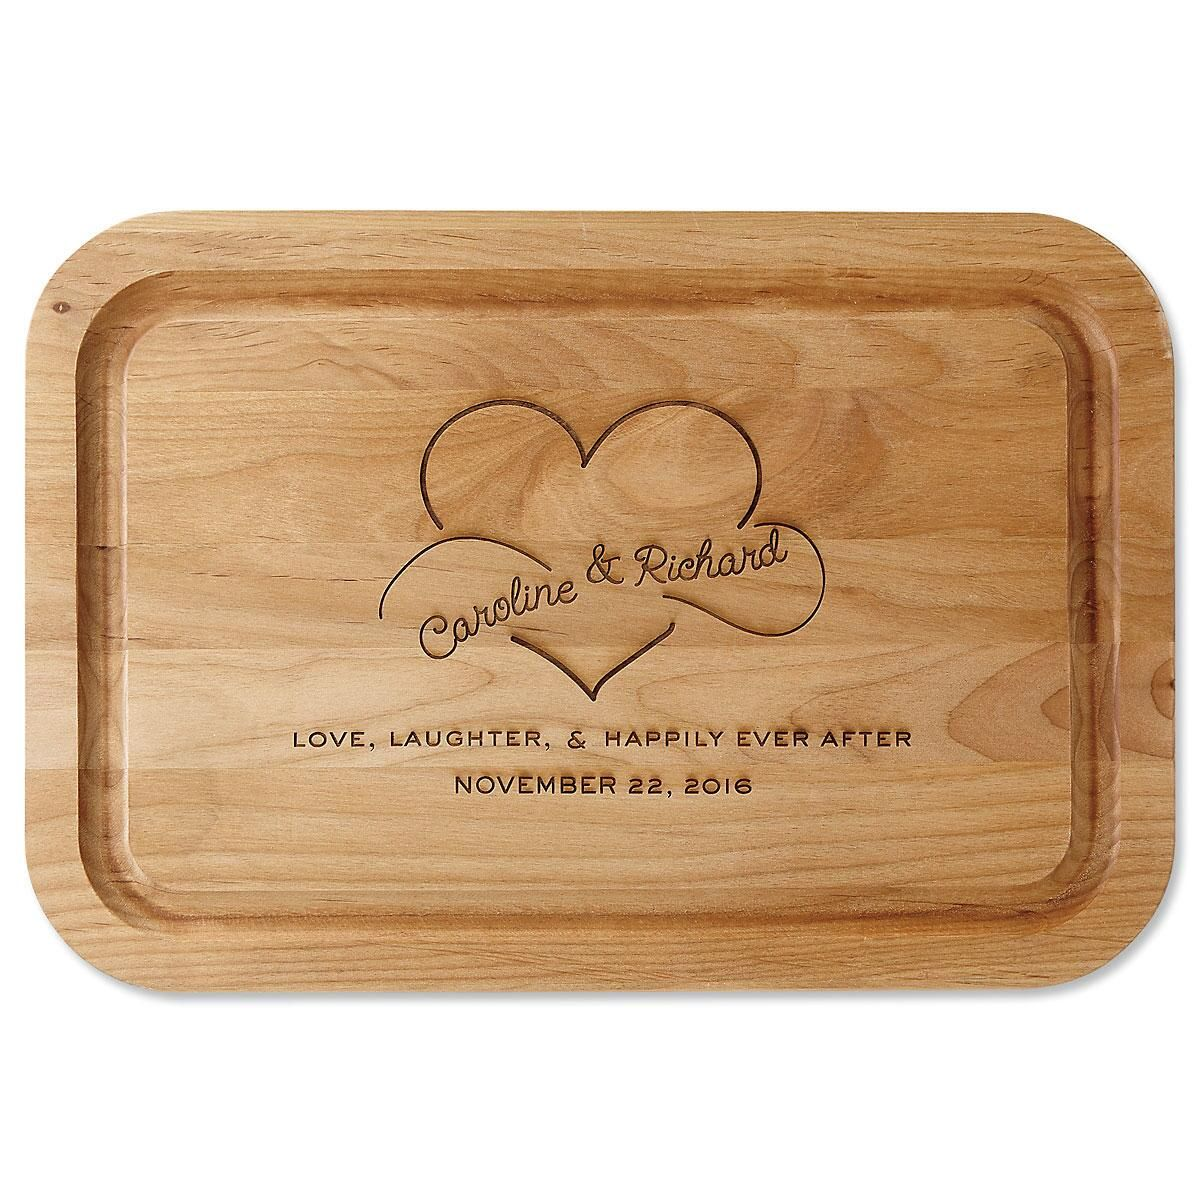 Happily Ever After Personalized Cutting Board